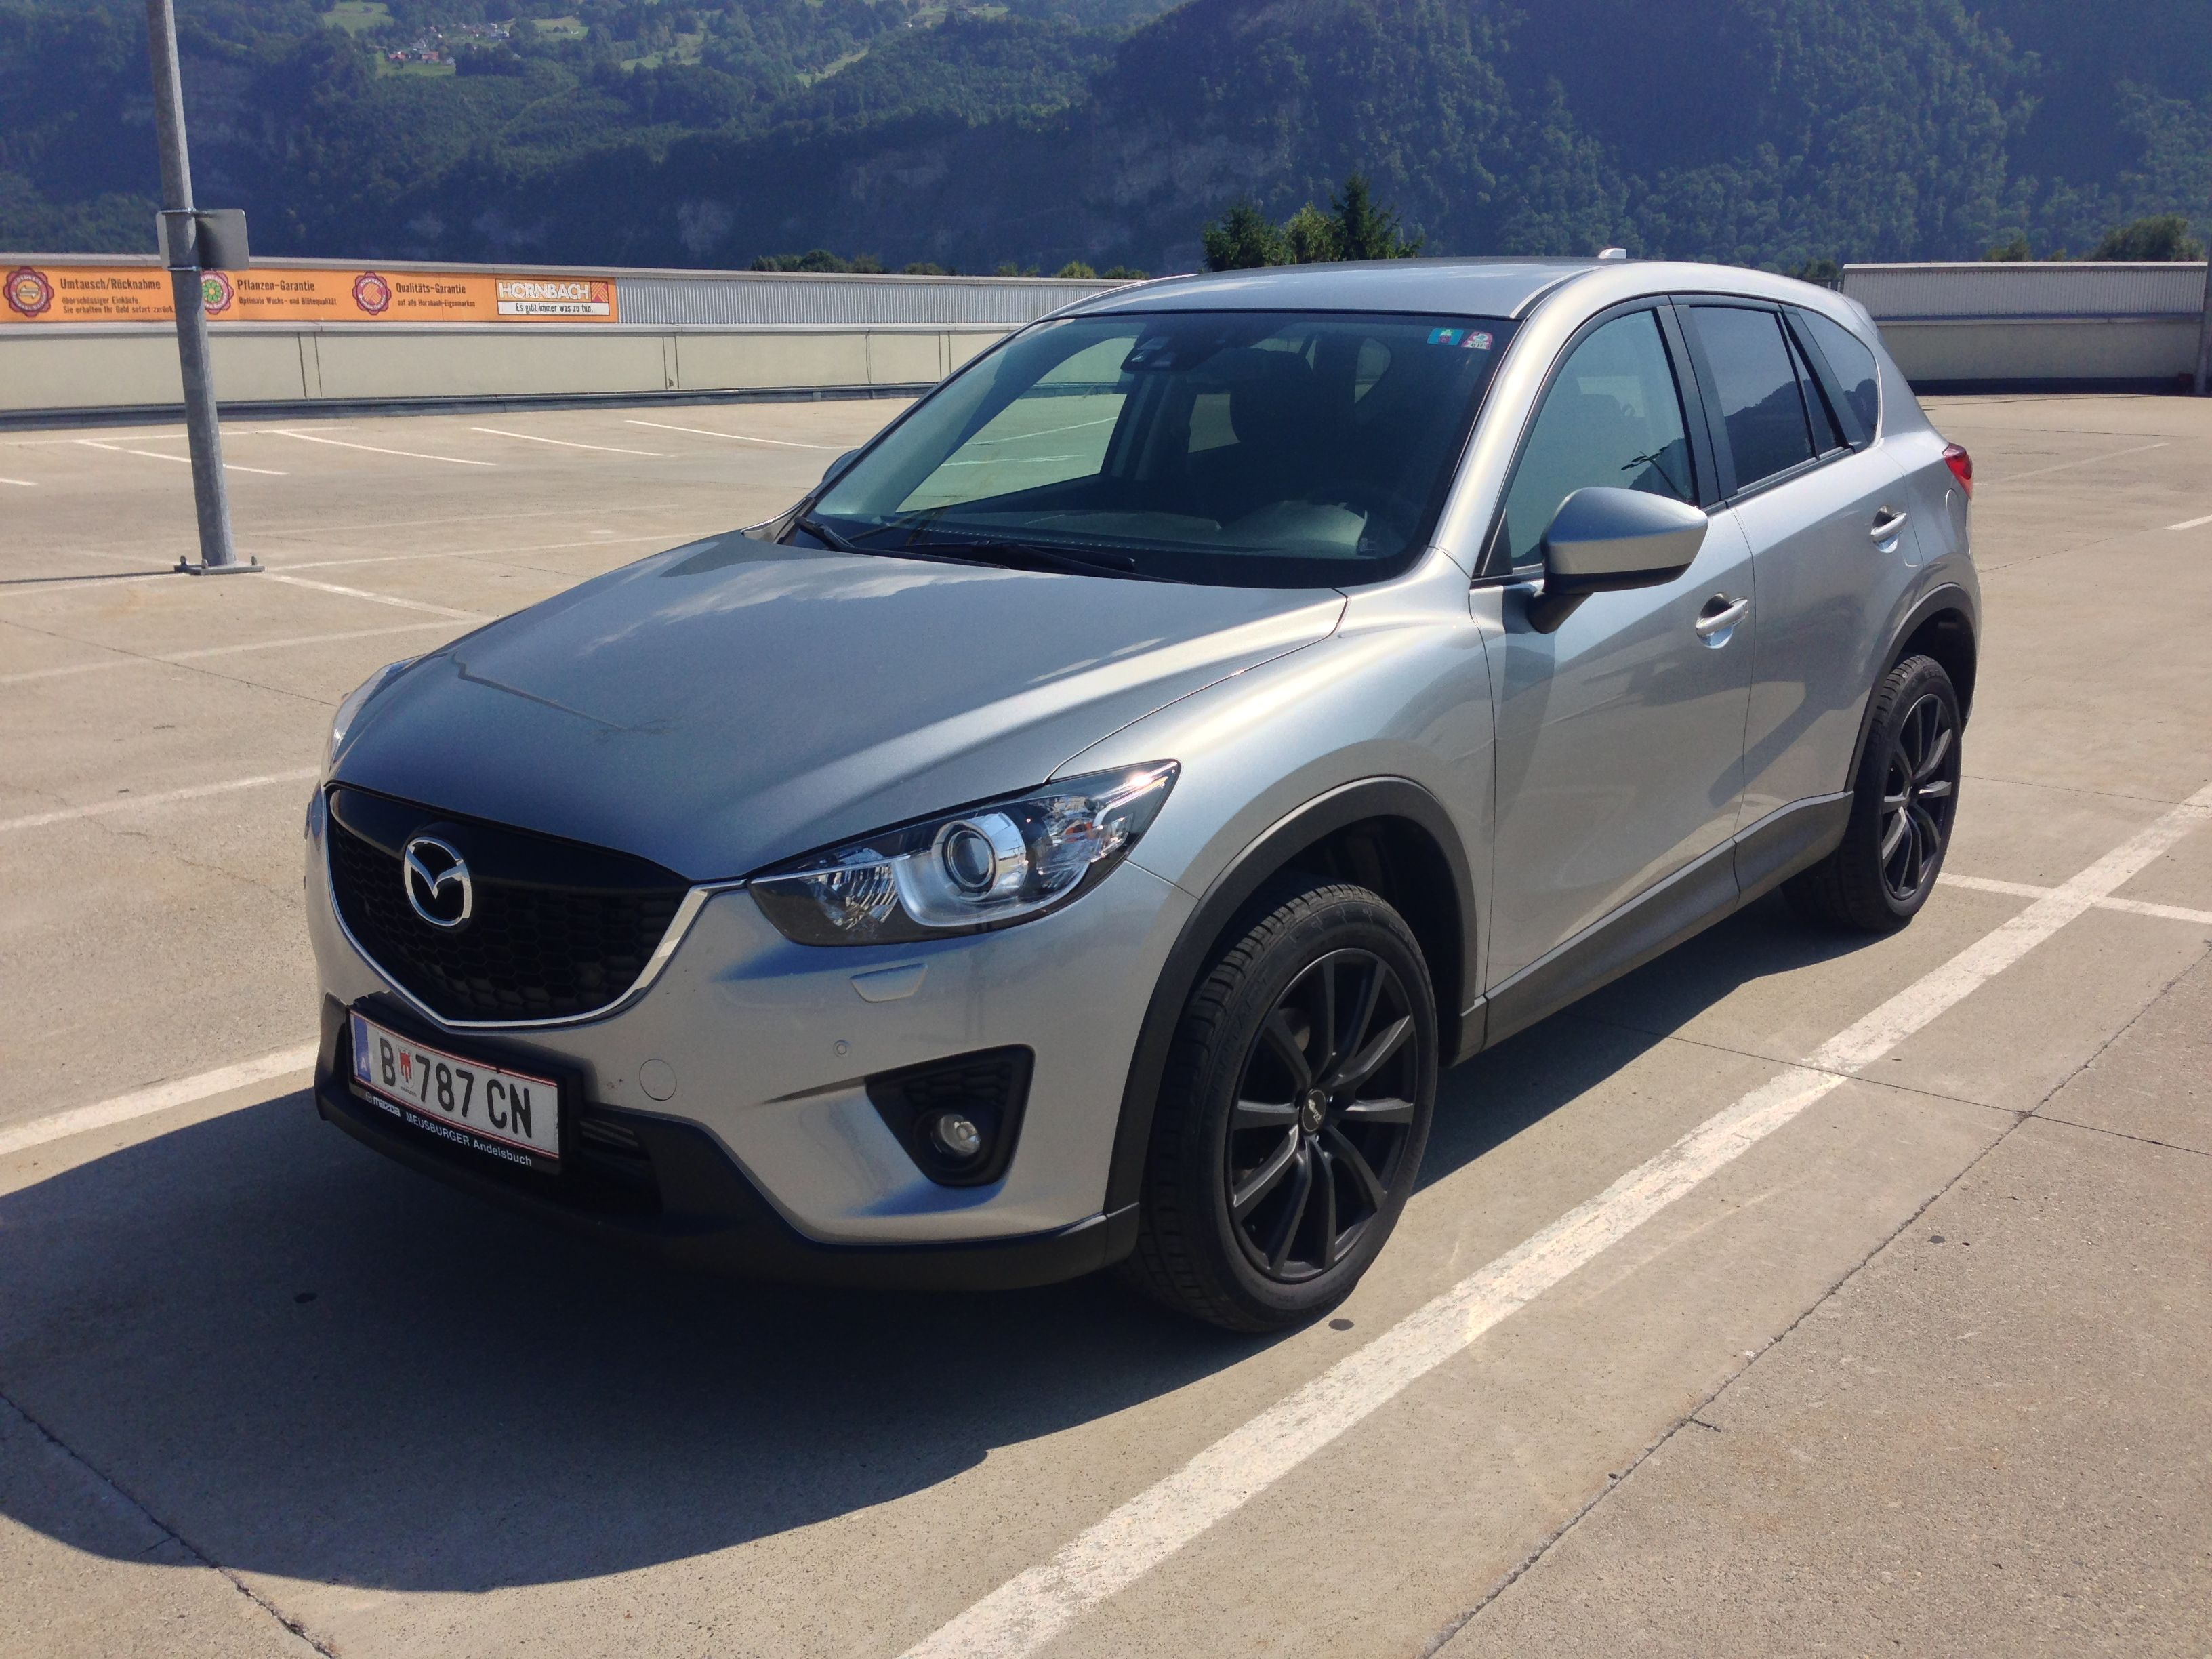 2013 mazda cx 5 looks better without the camouflage mazda cars and 4x4